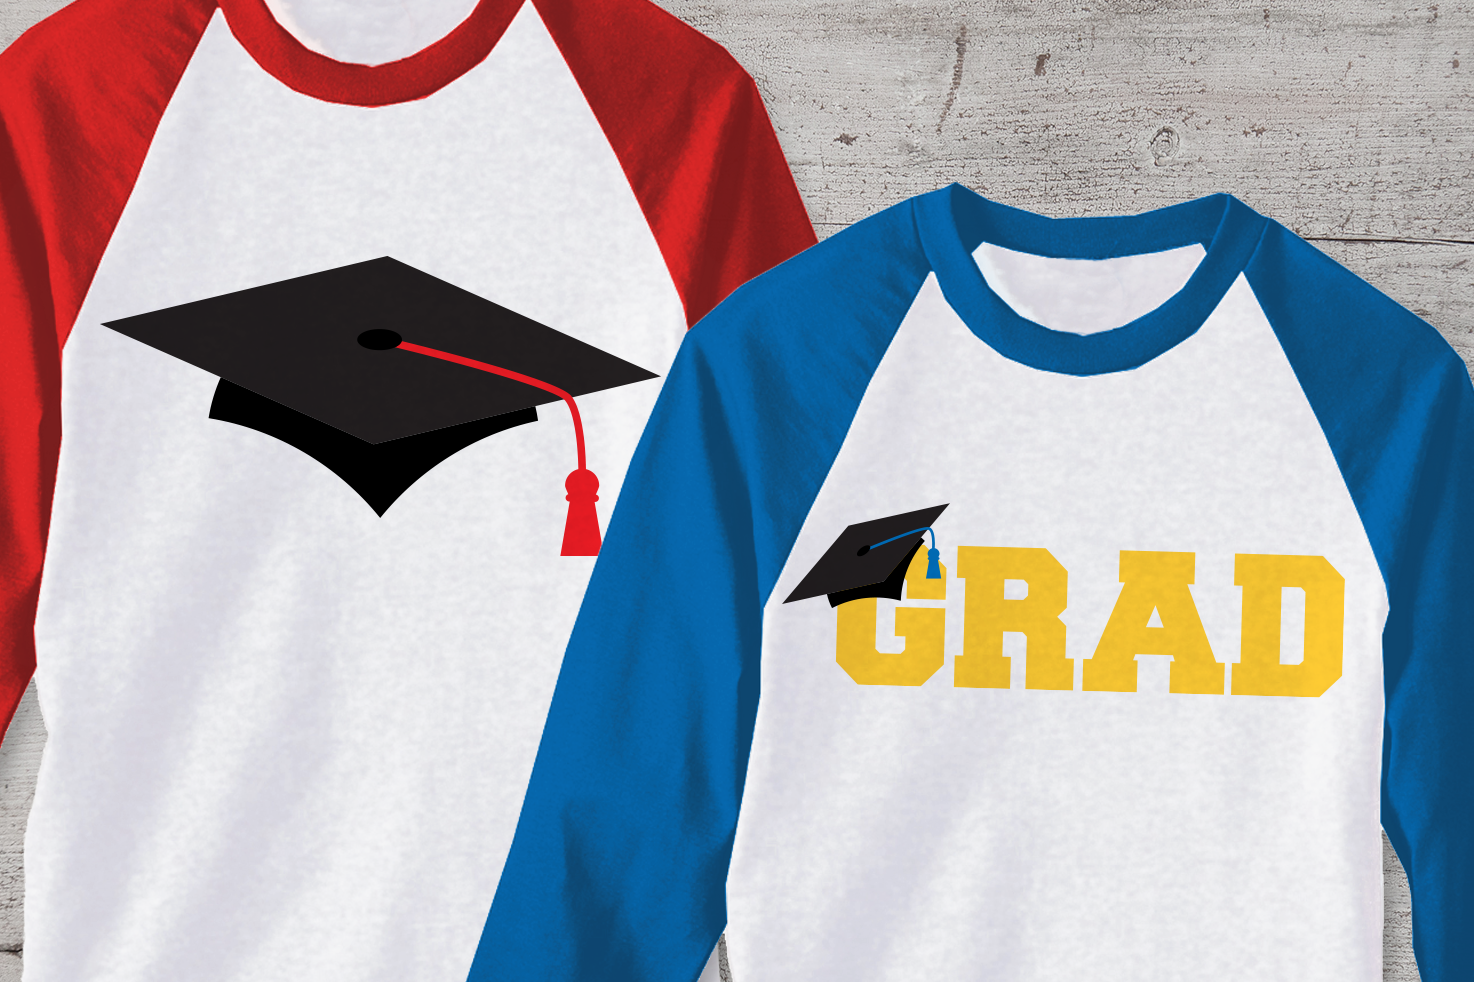 Download Free Graduation Cap Svg Set Graphic By Designedbygeeks Creative Fabrica for Cricut Explore, Silhouette and other cutting machines.